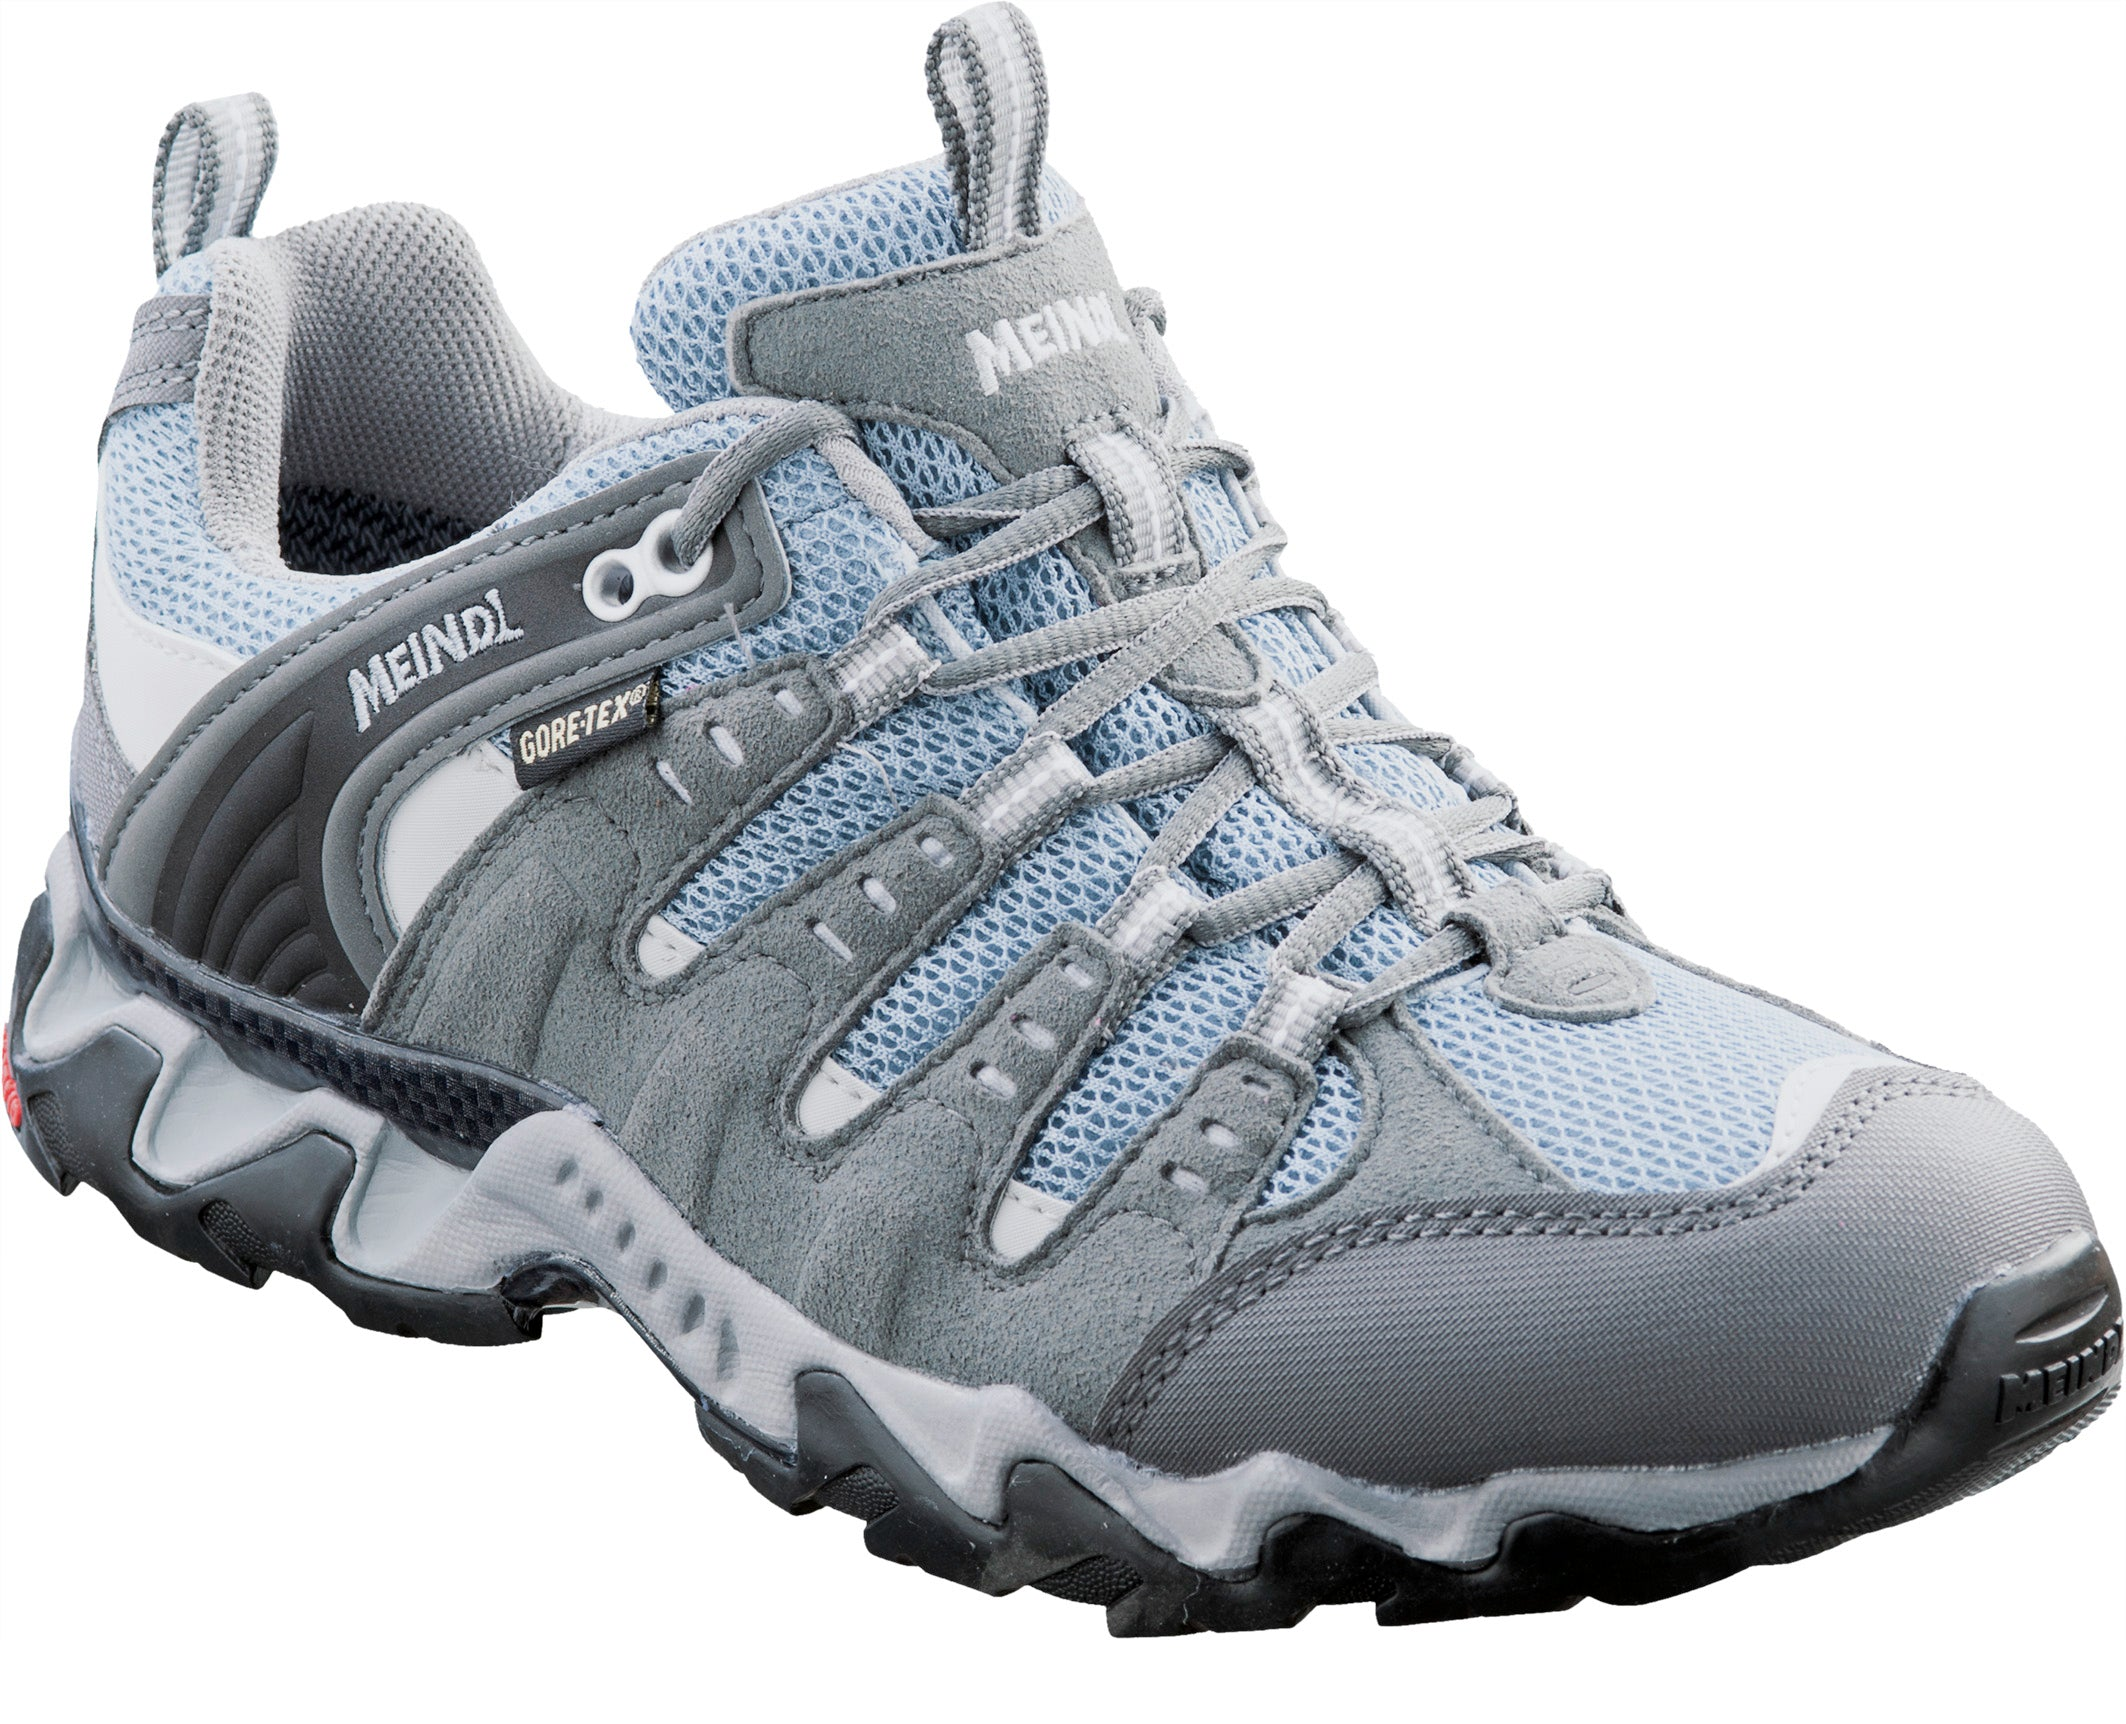 Meindl Respond GTX for Ladies in Graphite/Sky